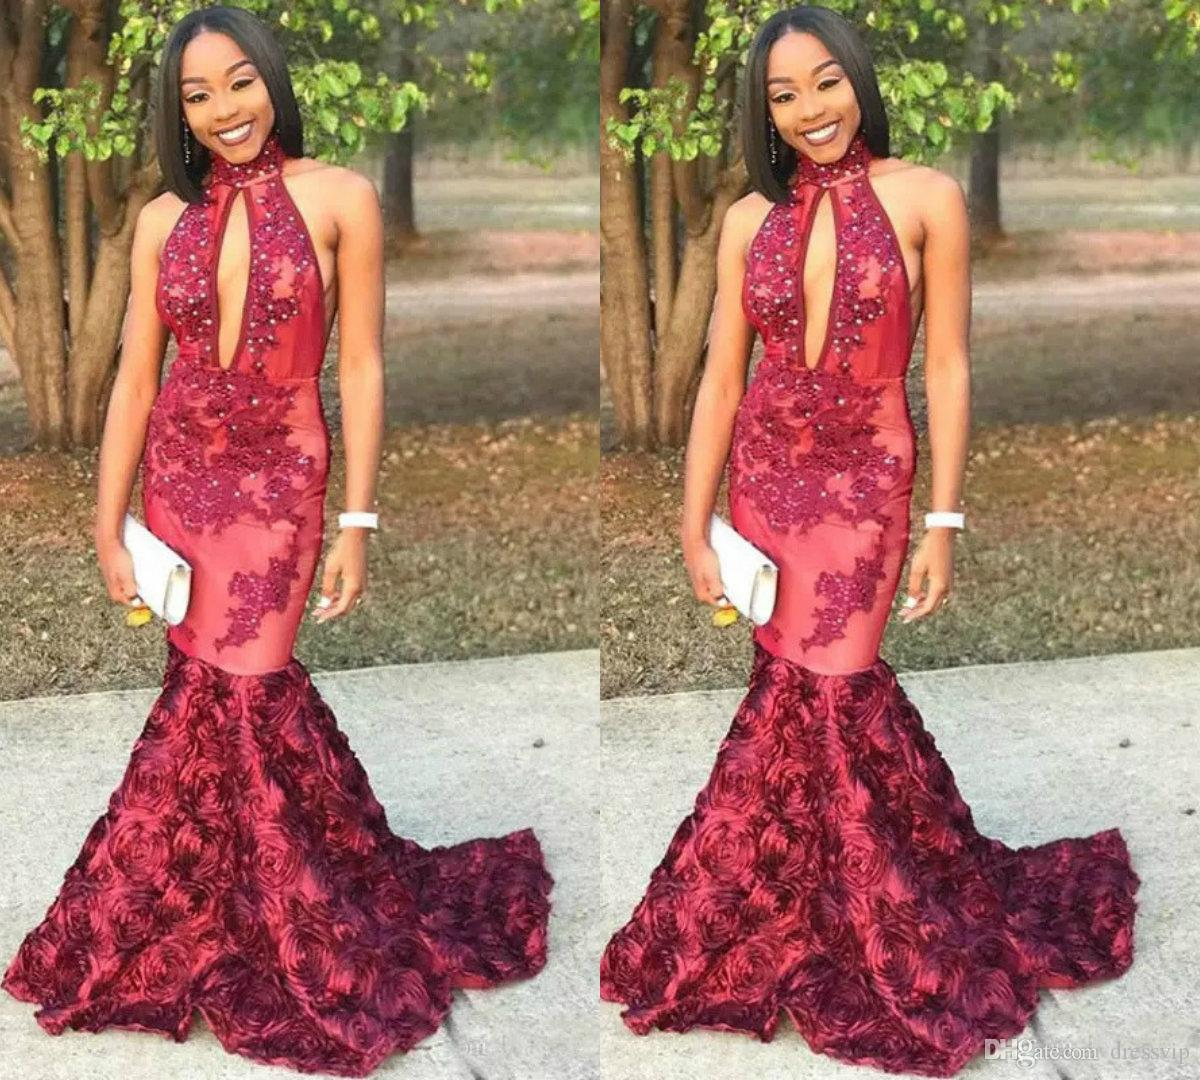 2018 Black Girls Mermaid Prom Dresses African High Neck Backless